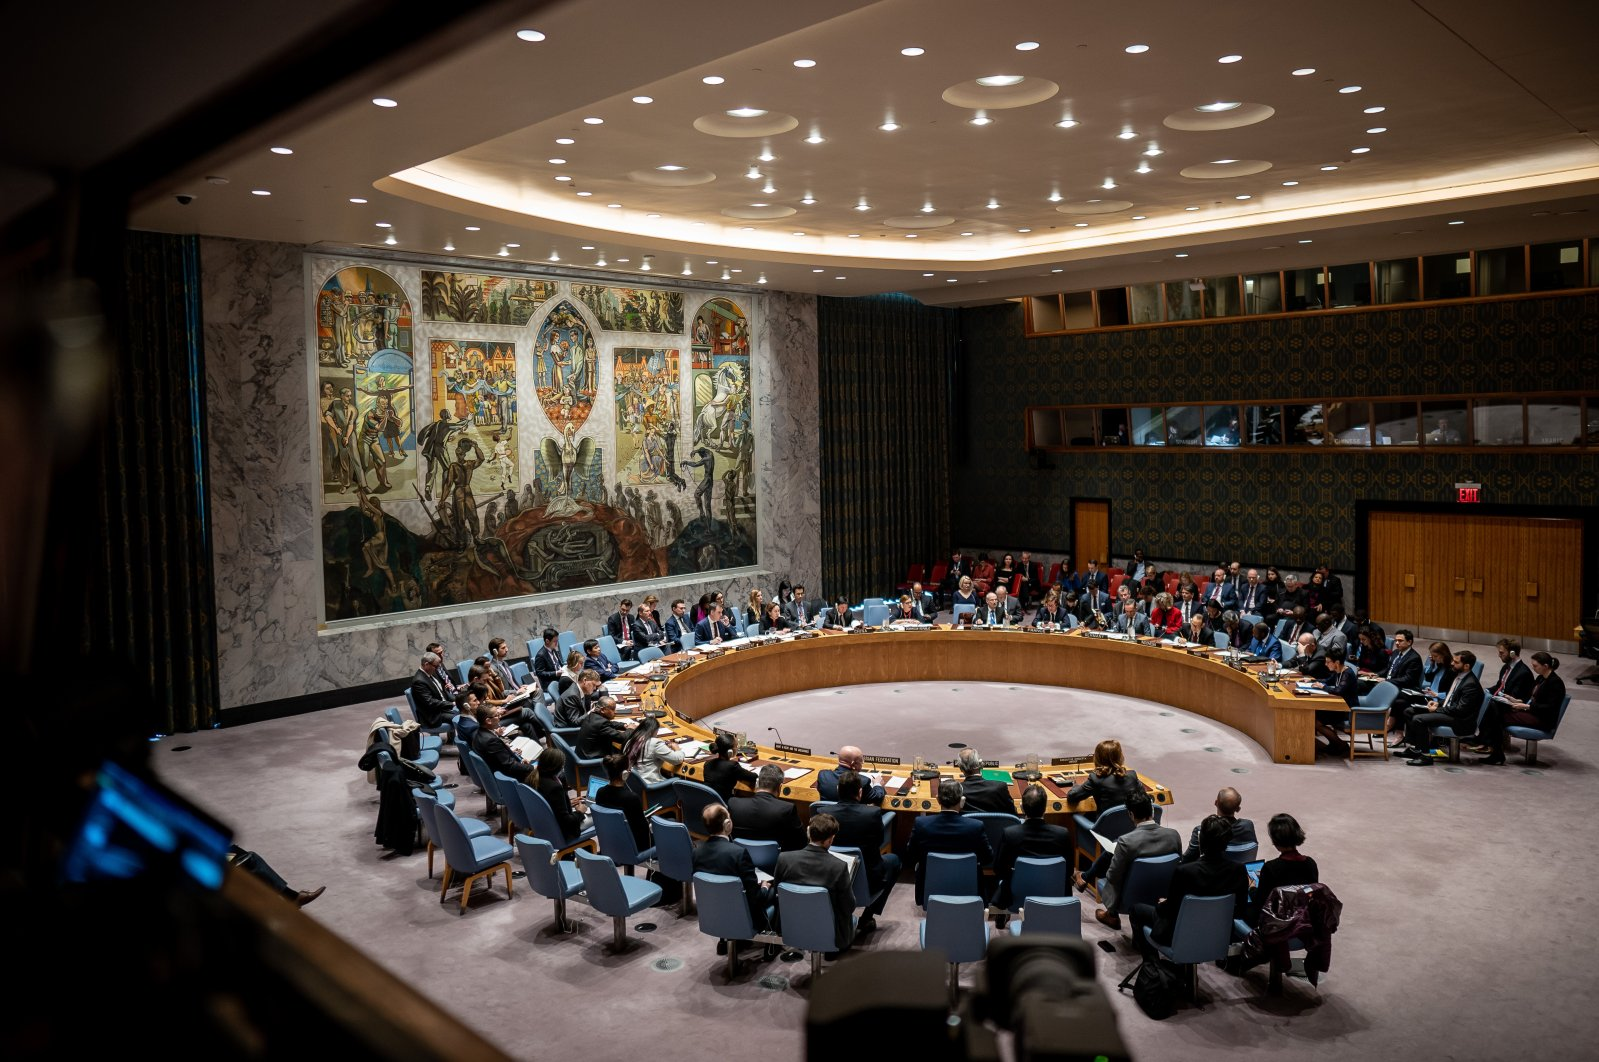 U.N. Security Council members attend a meeting in the U.N.'s headquarters in New York City, New York, U.S., Feb. 27, 2020. (Photo by Getty Images)